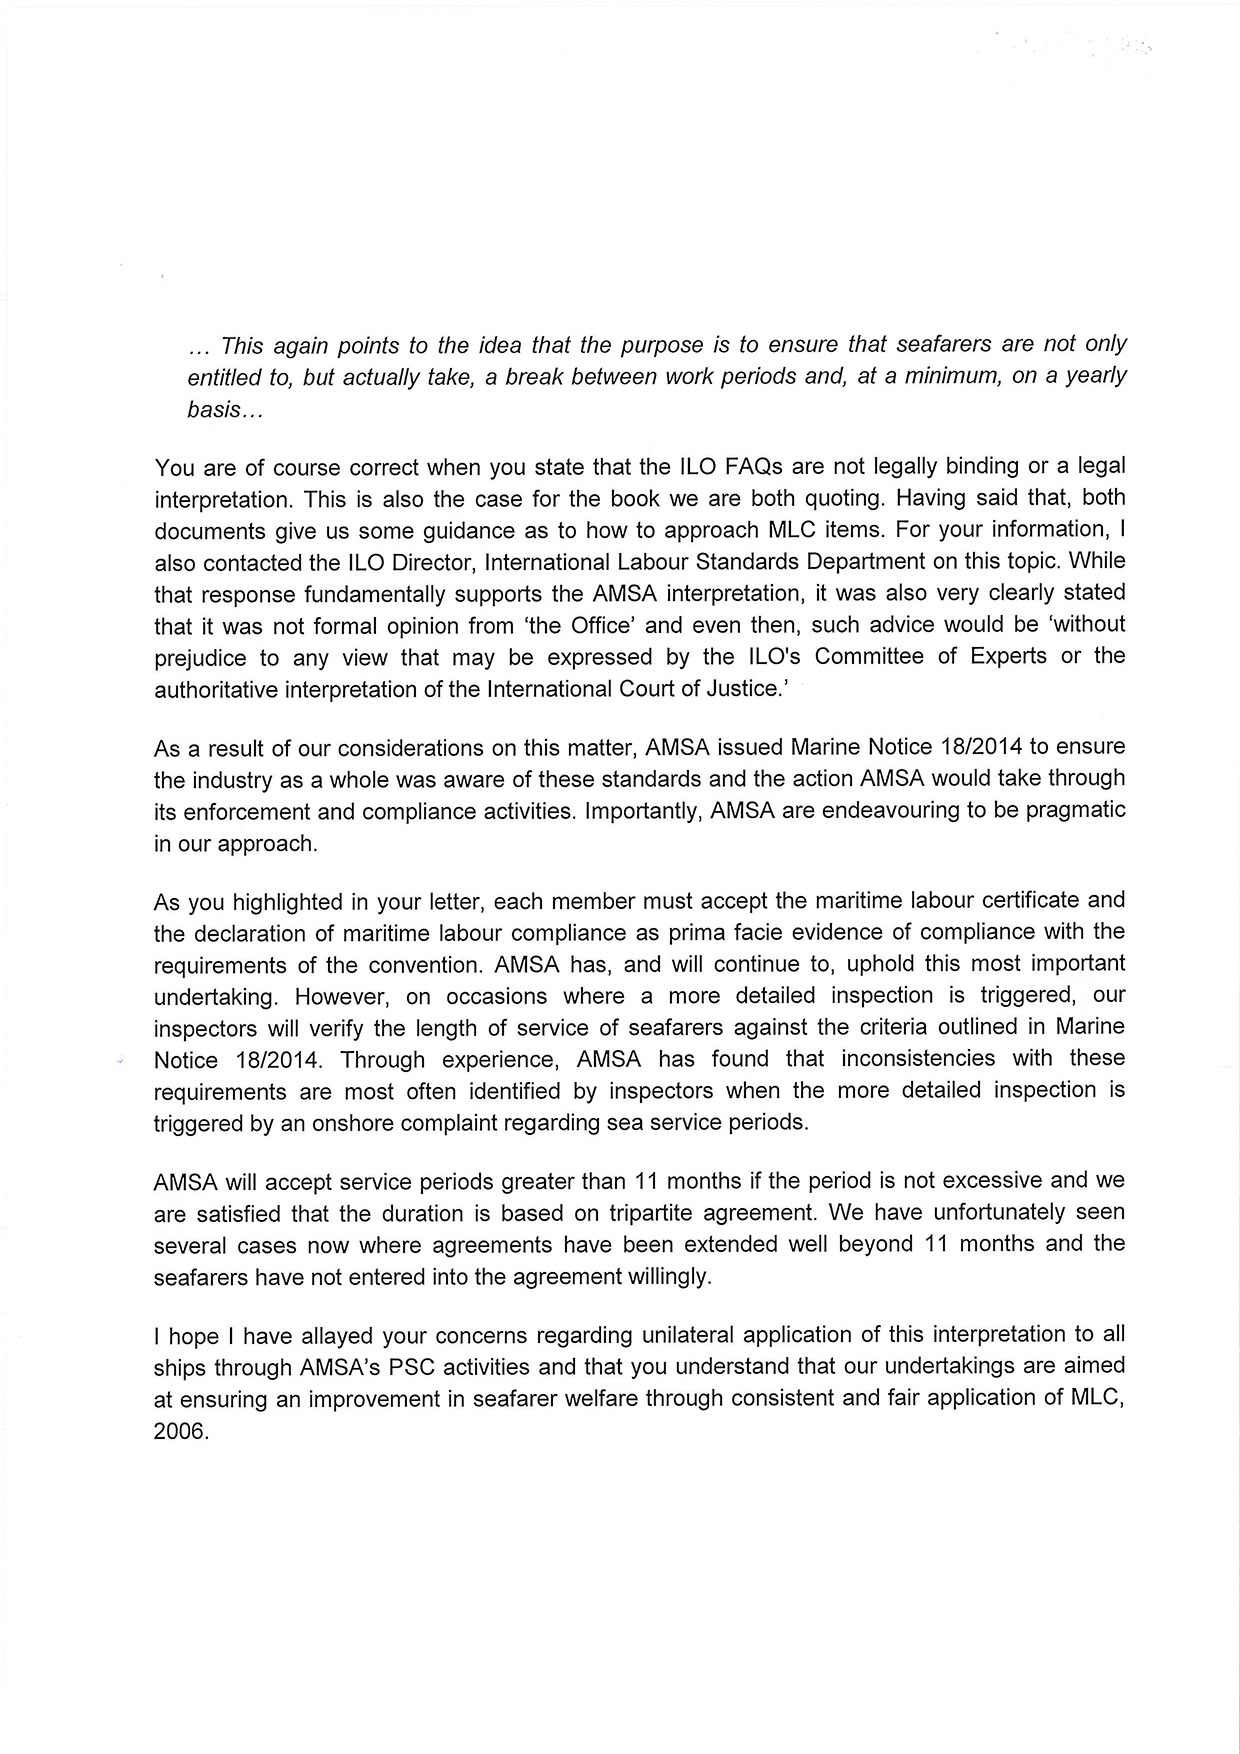 AMSA Response - Corro from Marshall Islands re MLC Annual Leave - MLC 20_Page_3.jpg